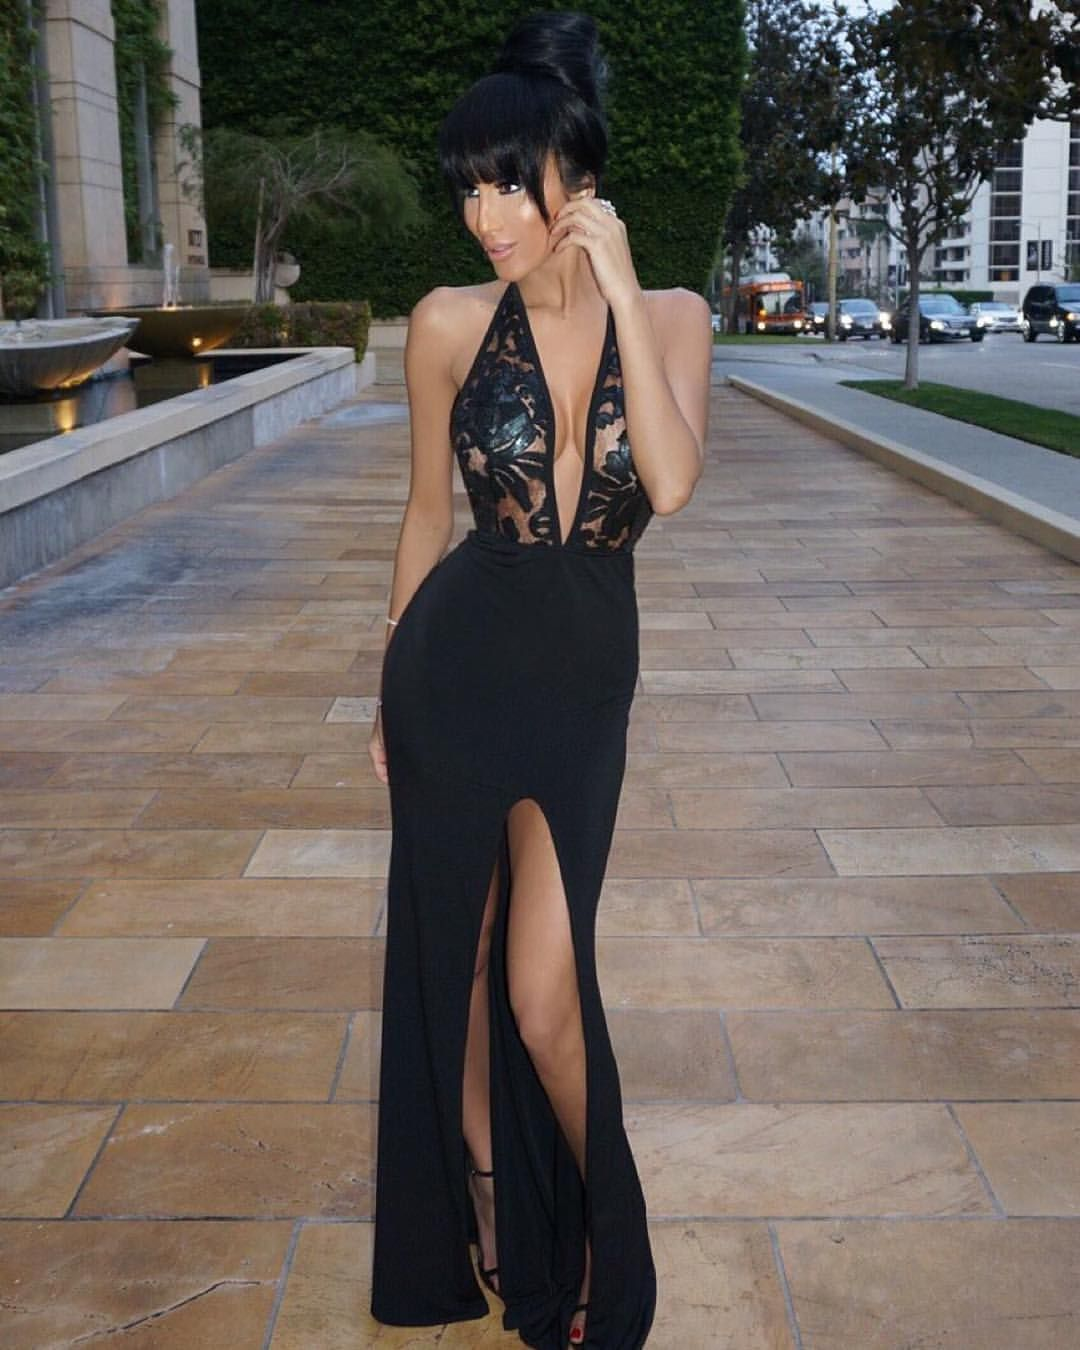 Wantmylook On Instagram Affordable Luxury Exclusively On Wantmylook Introducing Naya Dress As Seen On Th Black Gown Dress Dresses Backless Dress Formal